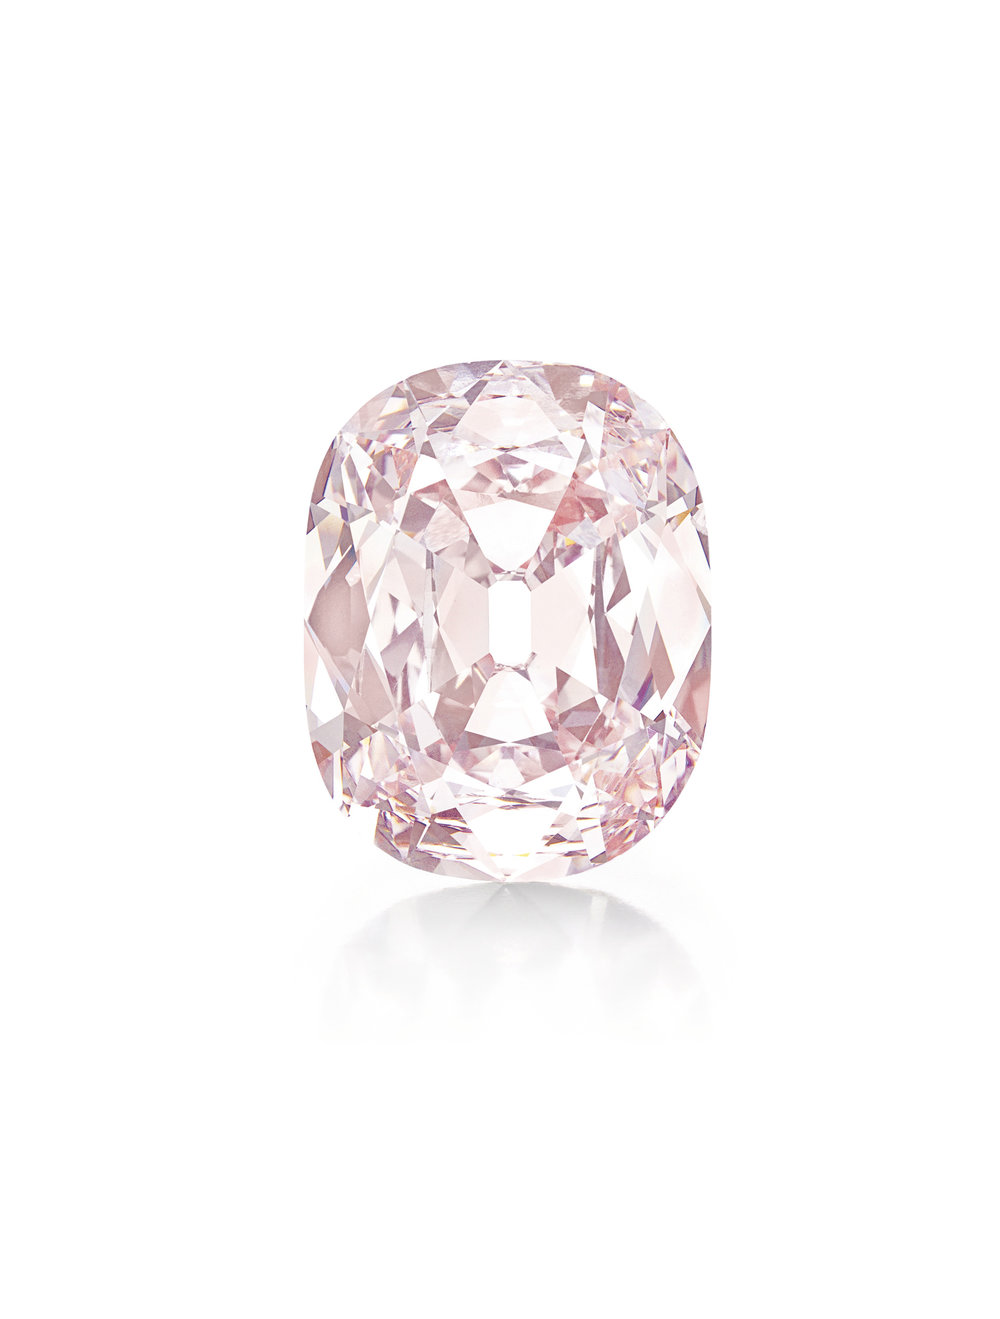 The Princie Pink, a 34.65 carat cushion cut Fancy Intense Pink diamond with VS2 clarity (GIA)